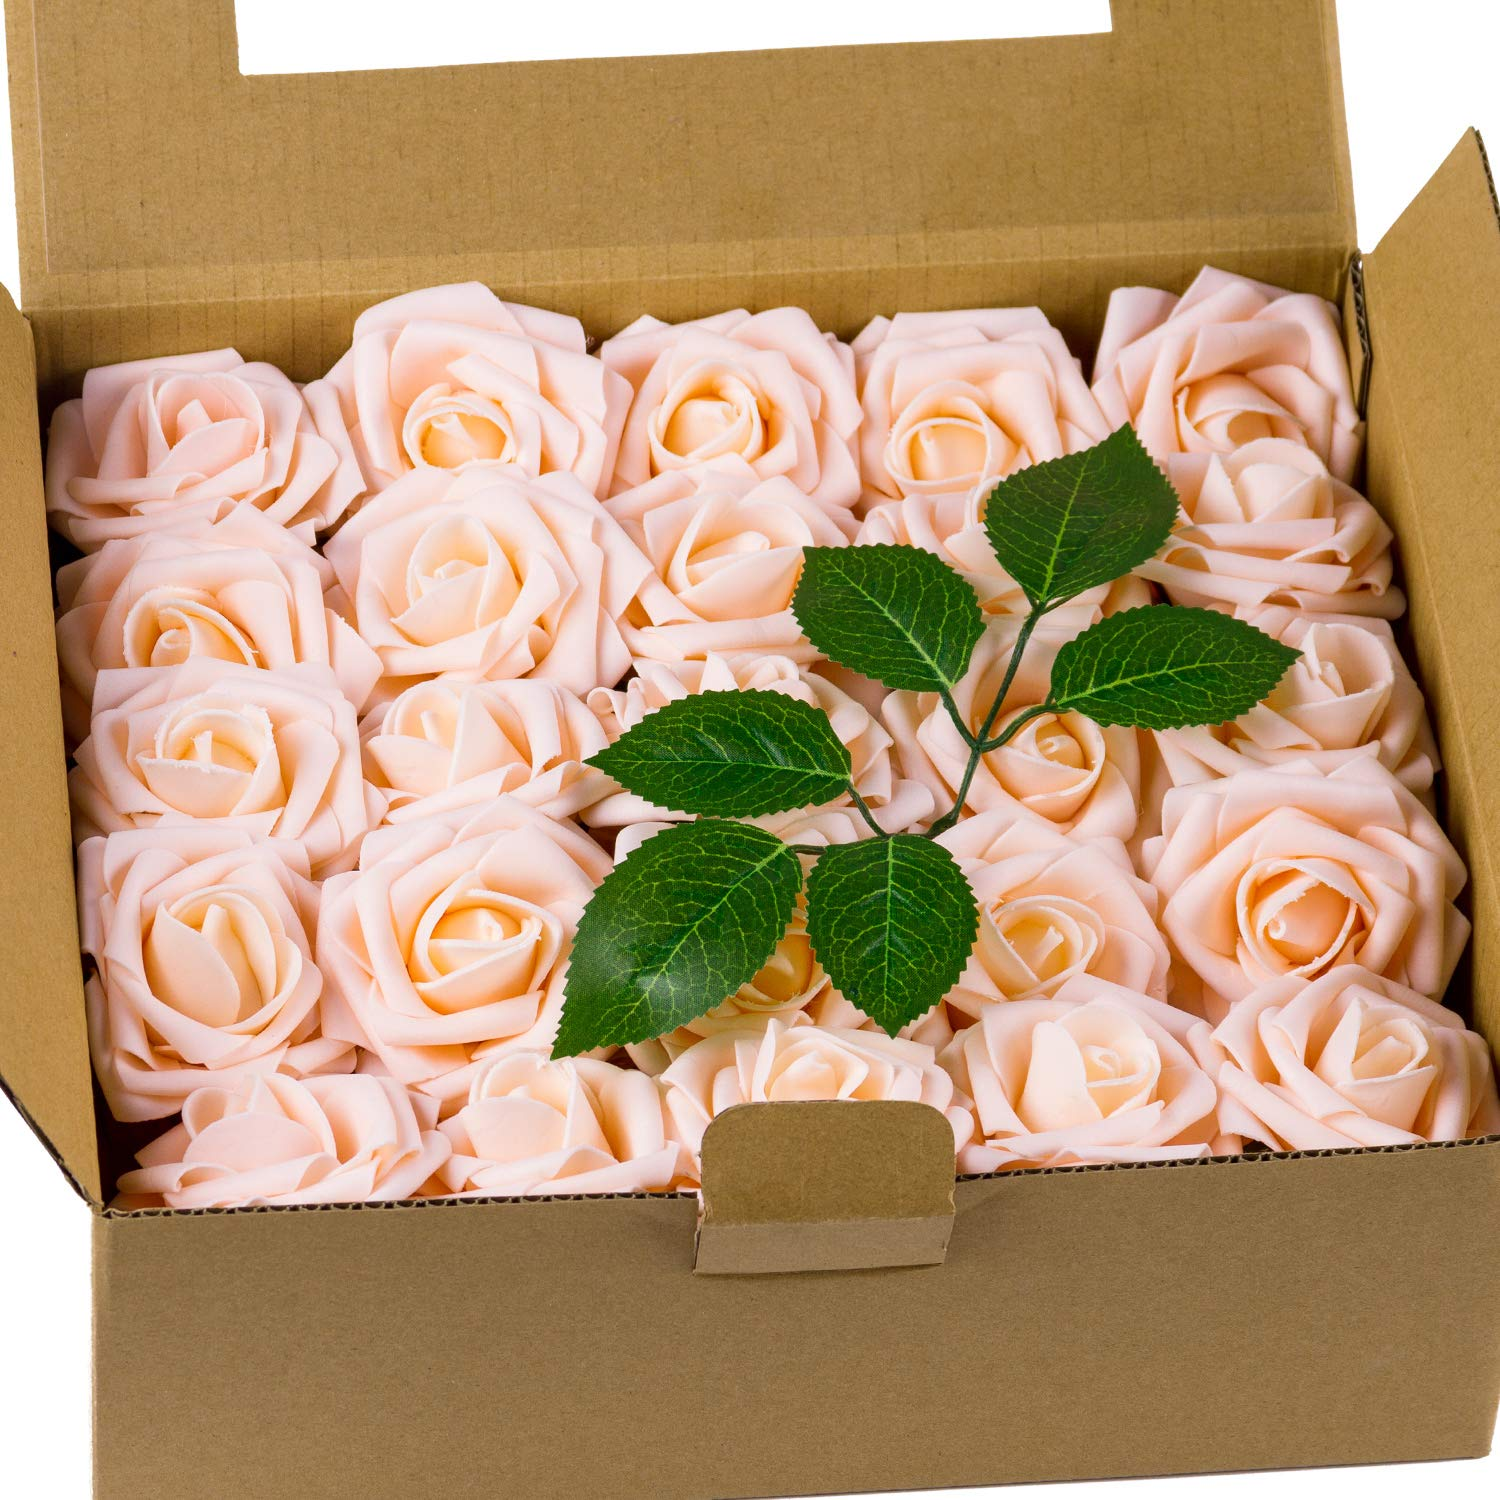 Loveinside Artificial Flowers Champagne Rose 50pcs Real Looking Fake Roses for DIY Wedding Bouquets Centerpieces Corsage Baby Shower Party Home Decorations